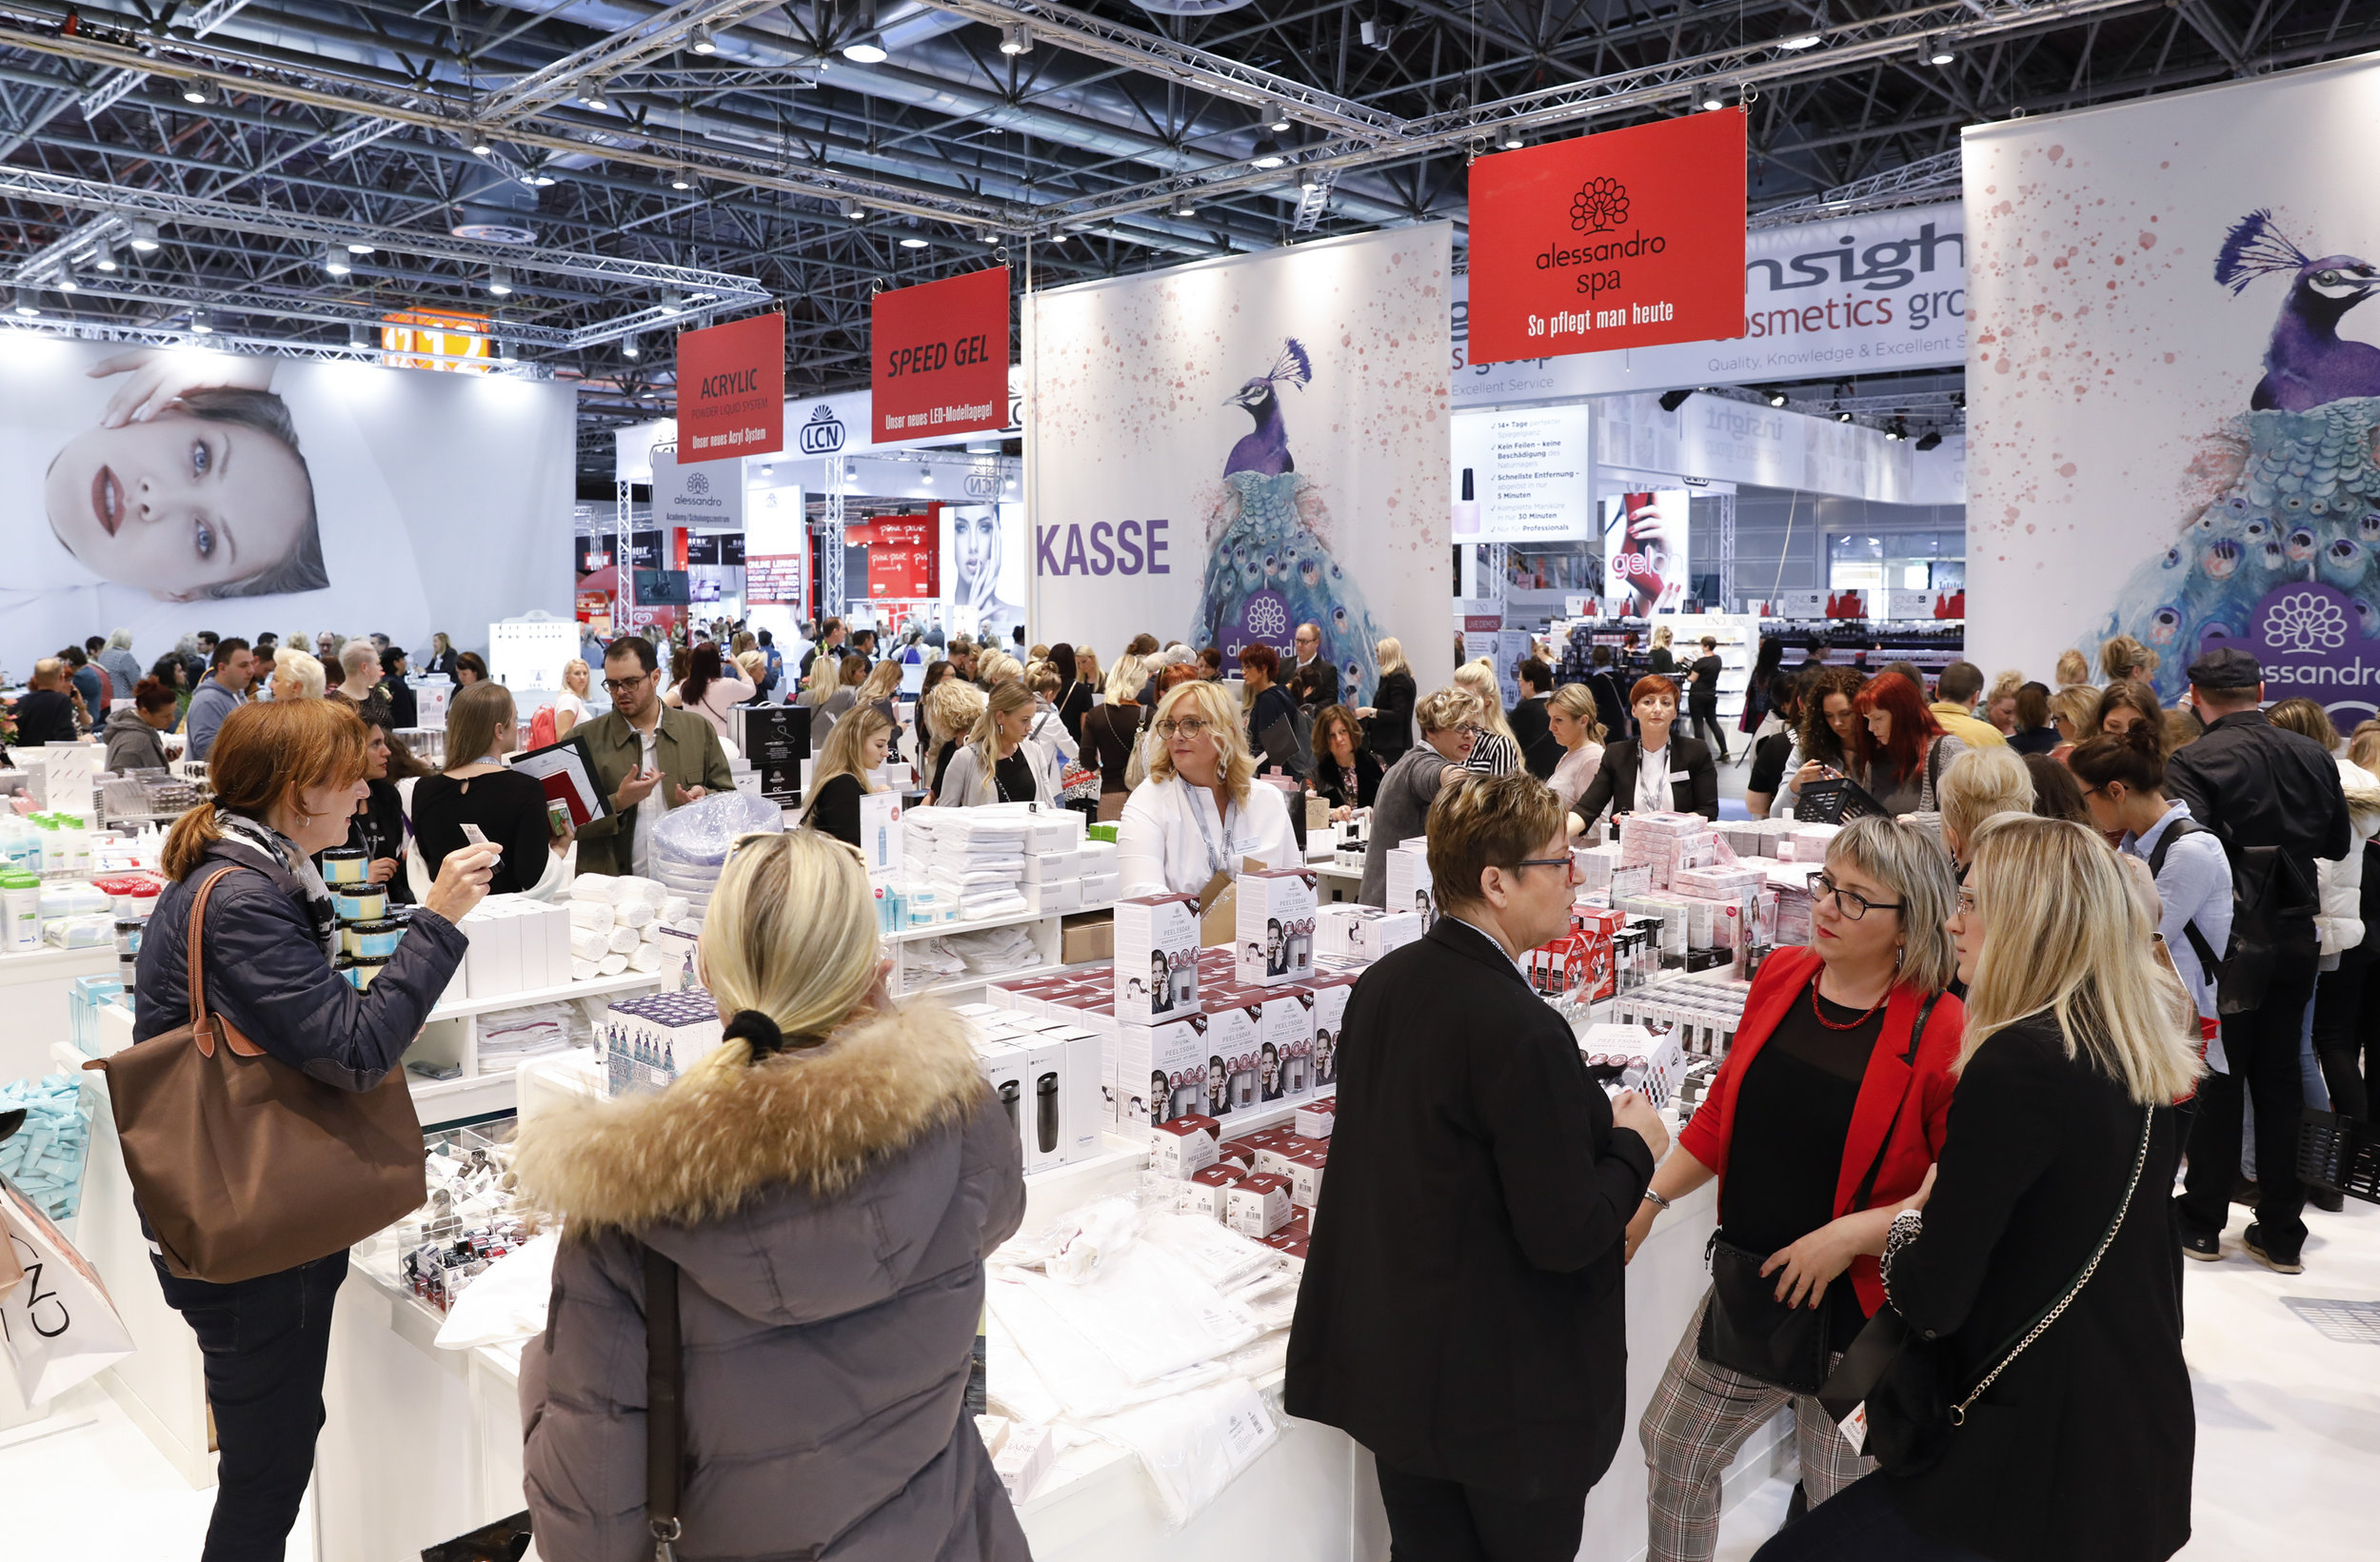 Beauty Düsseldorf | 6 - 8 March 2020 - The latest beauty products, current trends and hip treatments – at the leading international trade fair for cosmetics, nail, foot, wellness and spa, professionals from all over the world get an optimum overview of service cosmetics. Experience tomorrow's trends up close and let yourself be inspired by new business ideas for your business success. With around 1,500 exhibitors and brands from 32 countries – Beauty Düsseldorf is the leading trade fair for the sector and not for nothing.